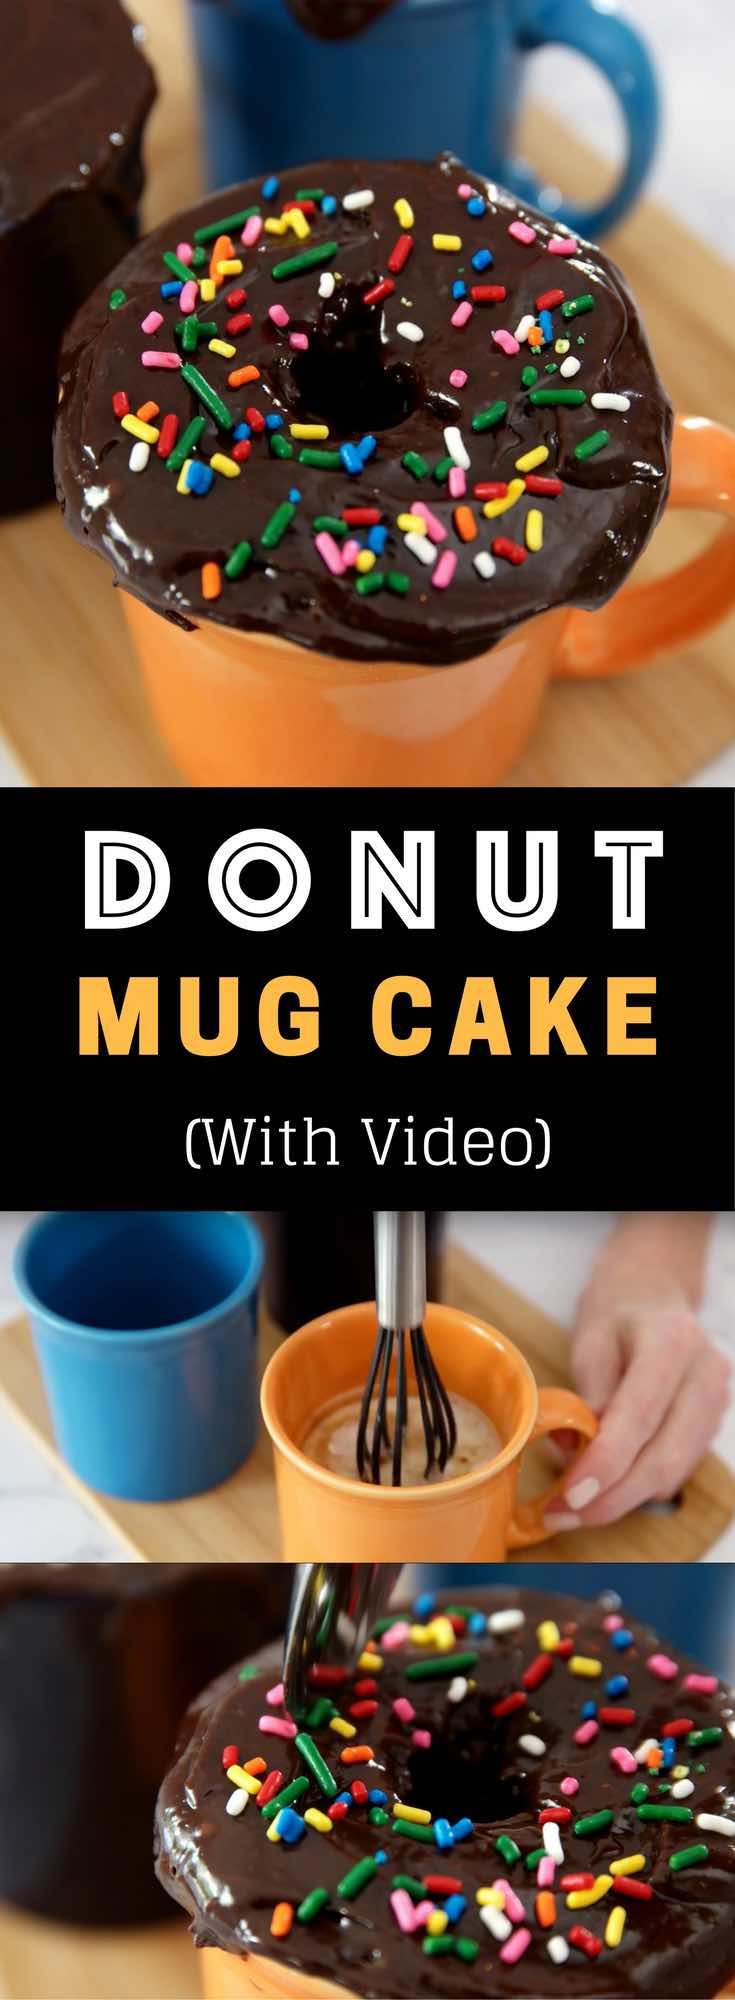 5 Minute Donut Mug Cake – A creamy, fluffy, delicious cake cooks in a mug in the microwave, ready in 5 minutes. It only requires a few simple ingredients: flour, sugar, baking powder, oil, milk, vanilla, chocolate chips, cream and nutmeg. Donut shape gives it extra fun. So good and easy to make for the perfect dessert or snack. No bake. Vegetarian. Video recipe. | tipbuzz.com